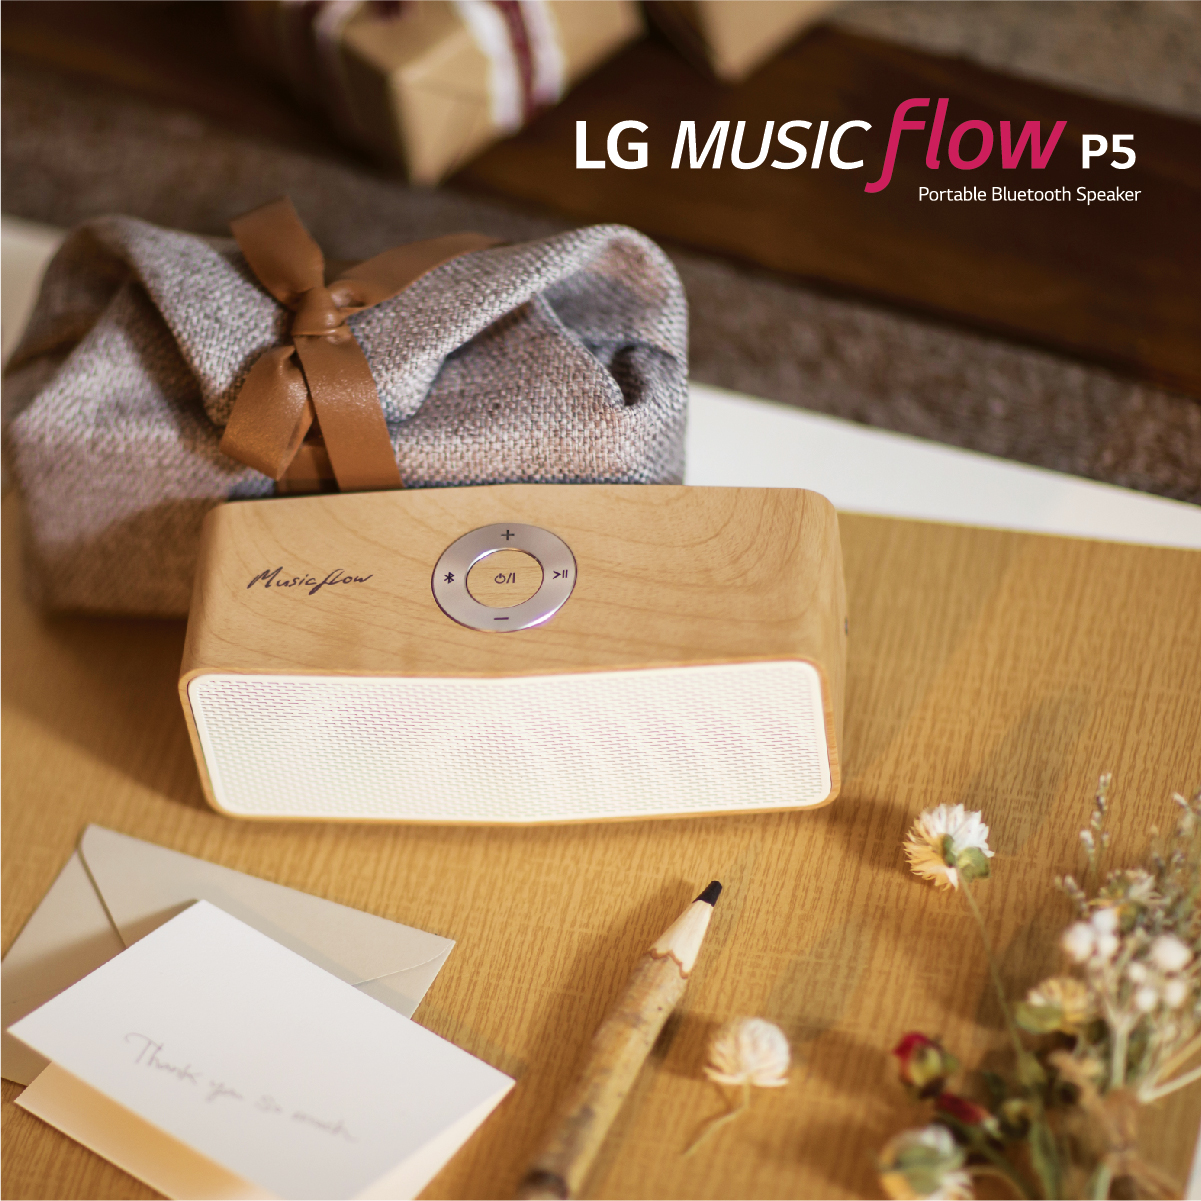 LG Music Flow P5 Wooden Speaker